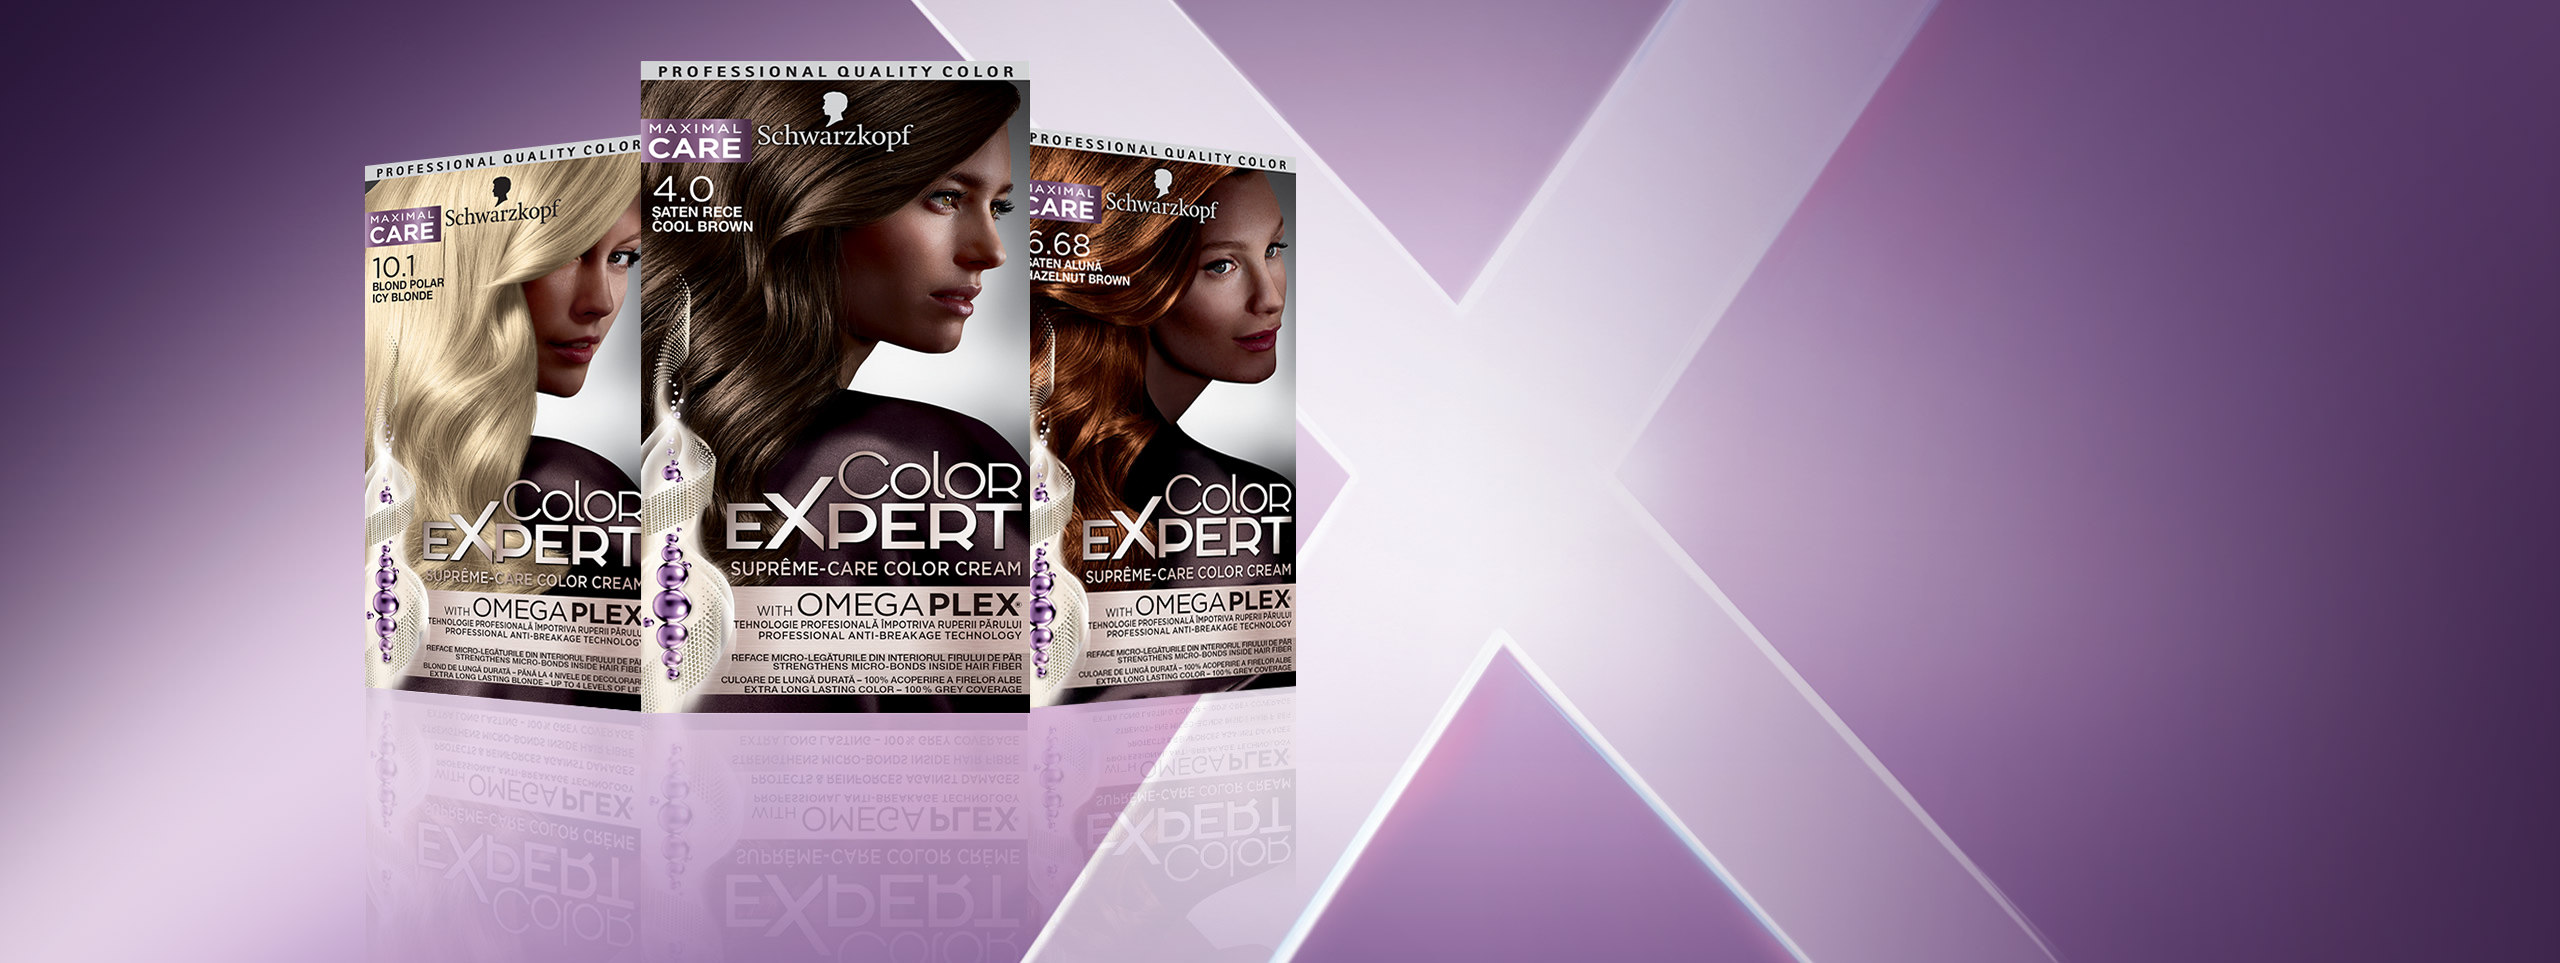 color-expert-products-colorcream-stage-2560x963